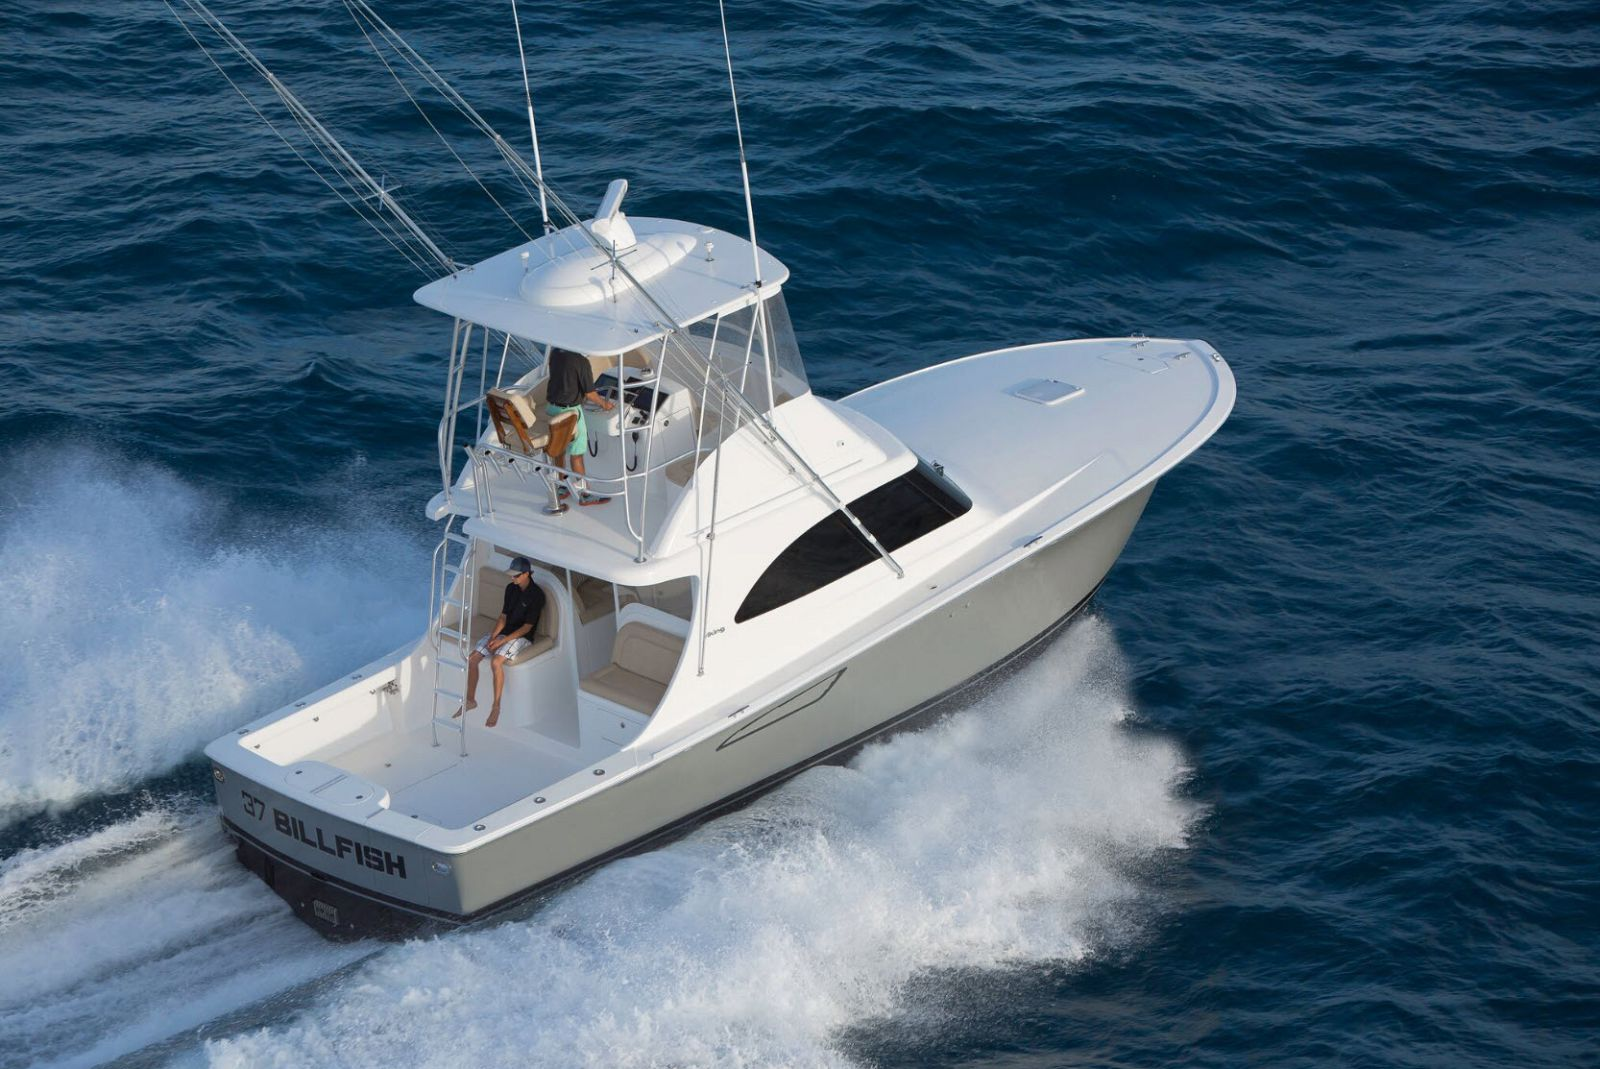 Viking Yachts 37 Billfish